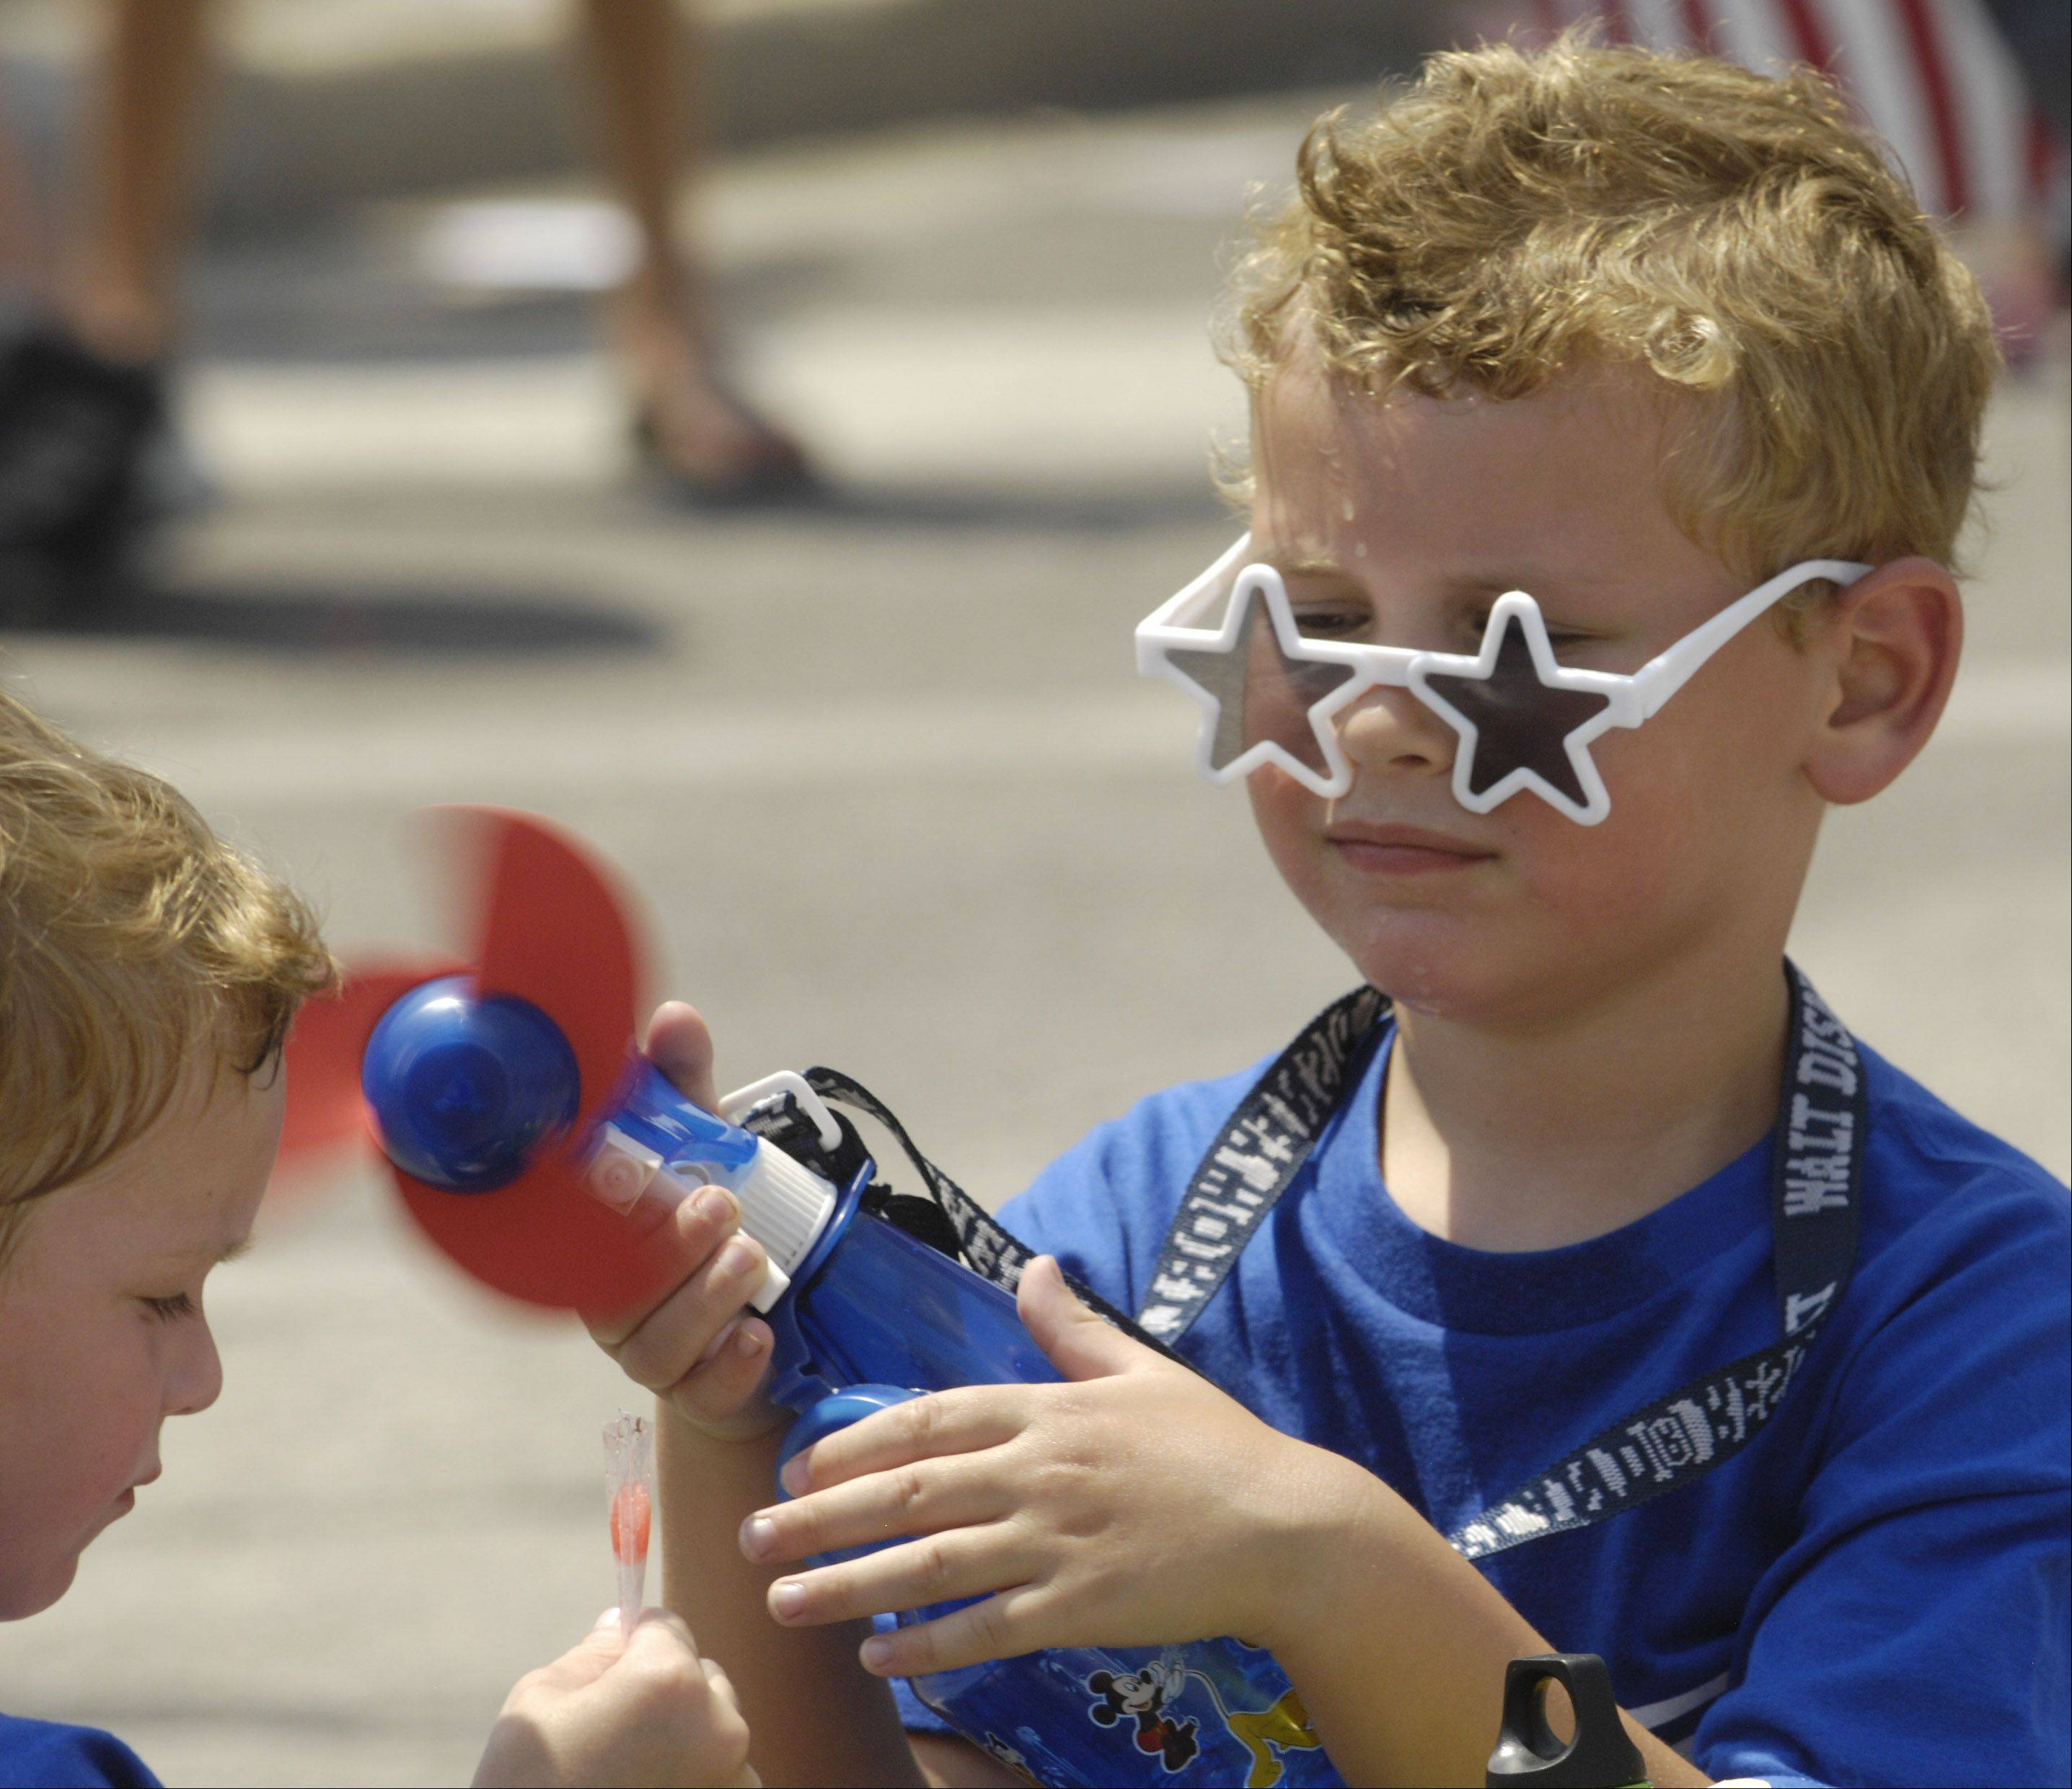 Jack Fitzgerald, 5, of Mount Prospect, aims a fan at his cousin, Tyler Fitzgerald, 3, of Schaumburg, as he helps him cool off during the Mount Prospect Fourth of July parade Wednesday.